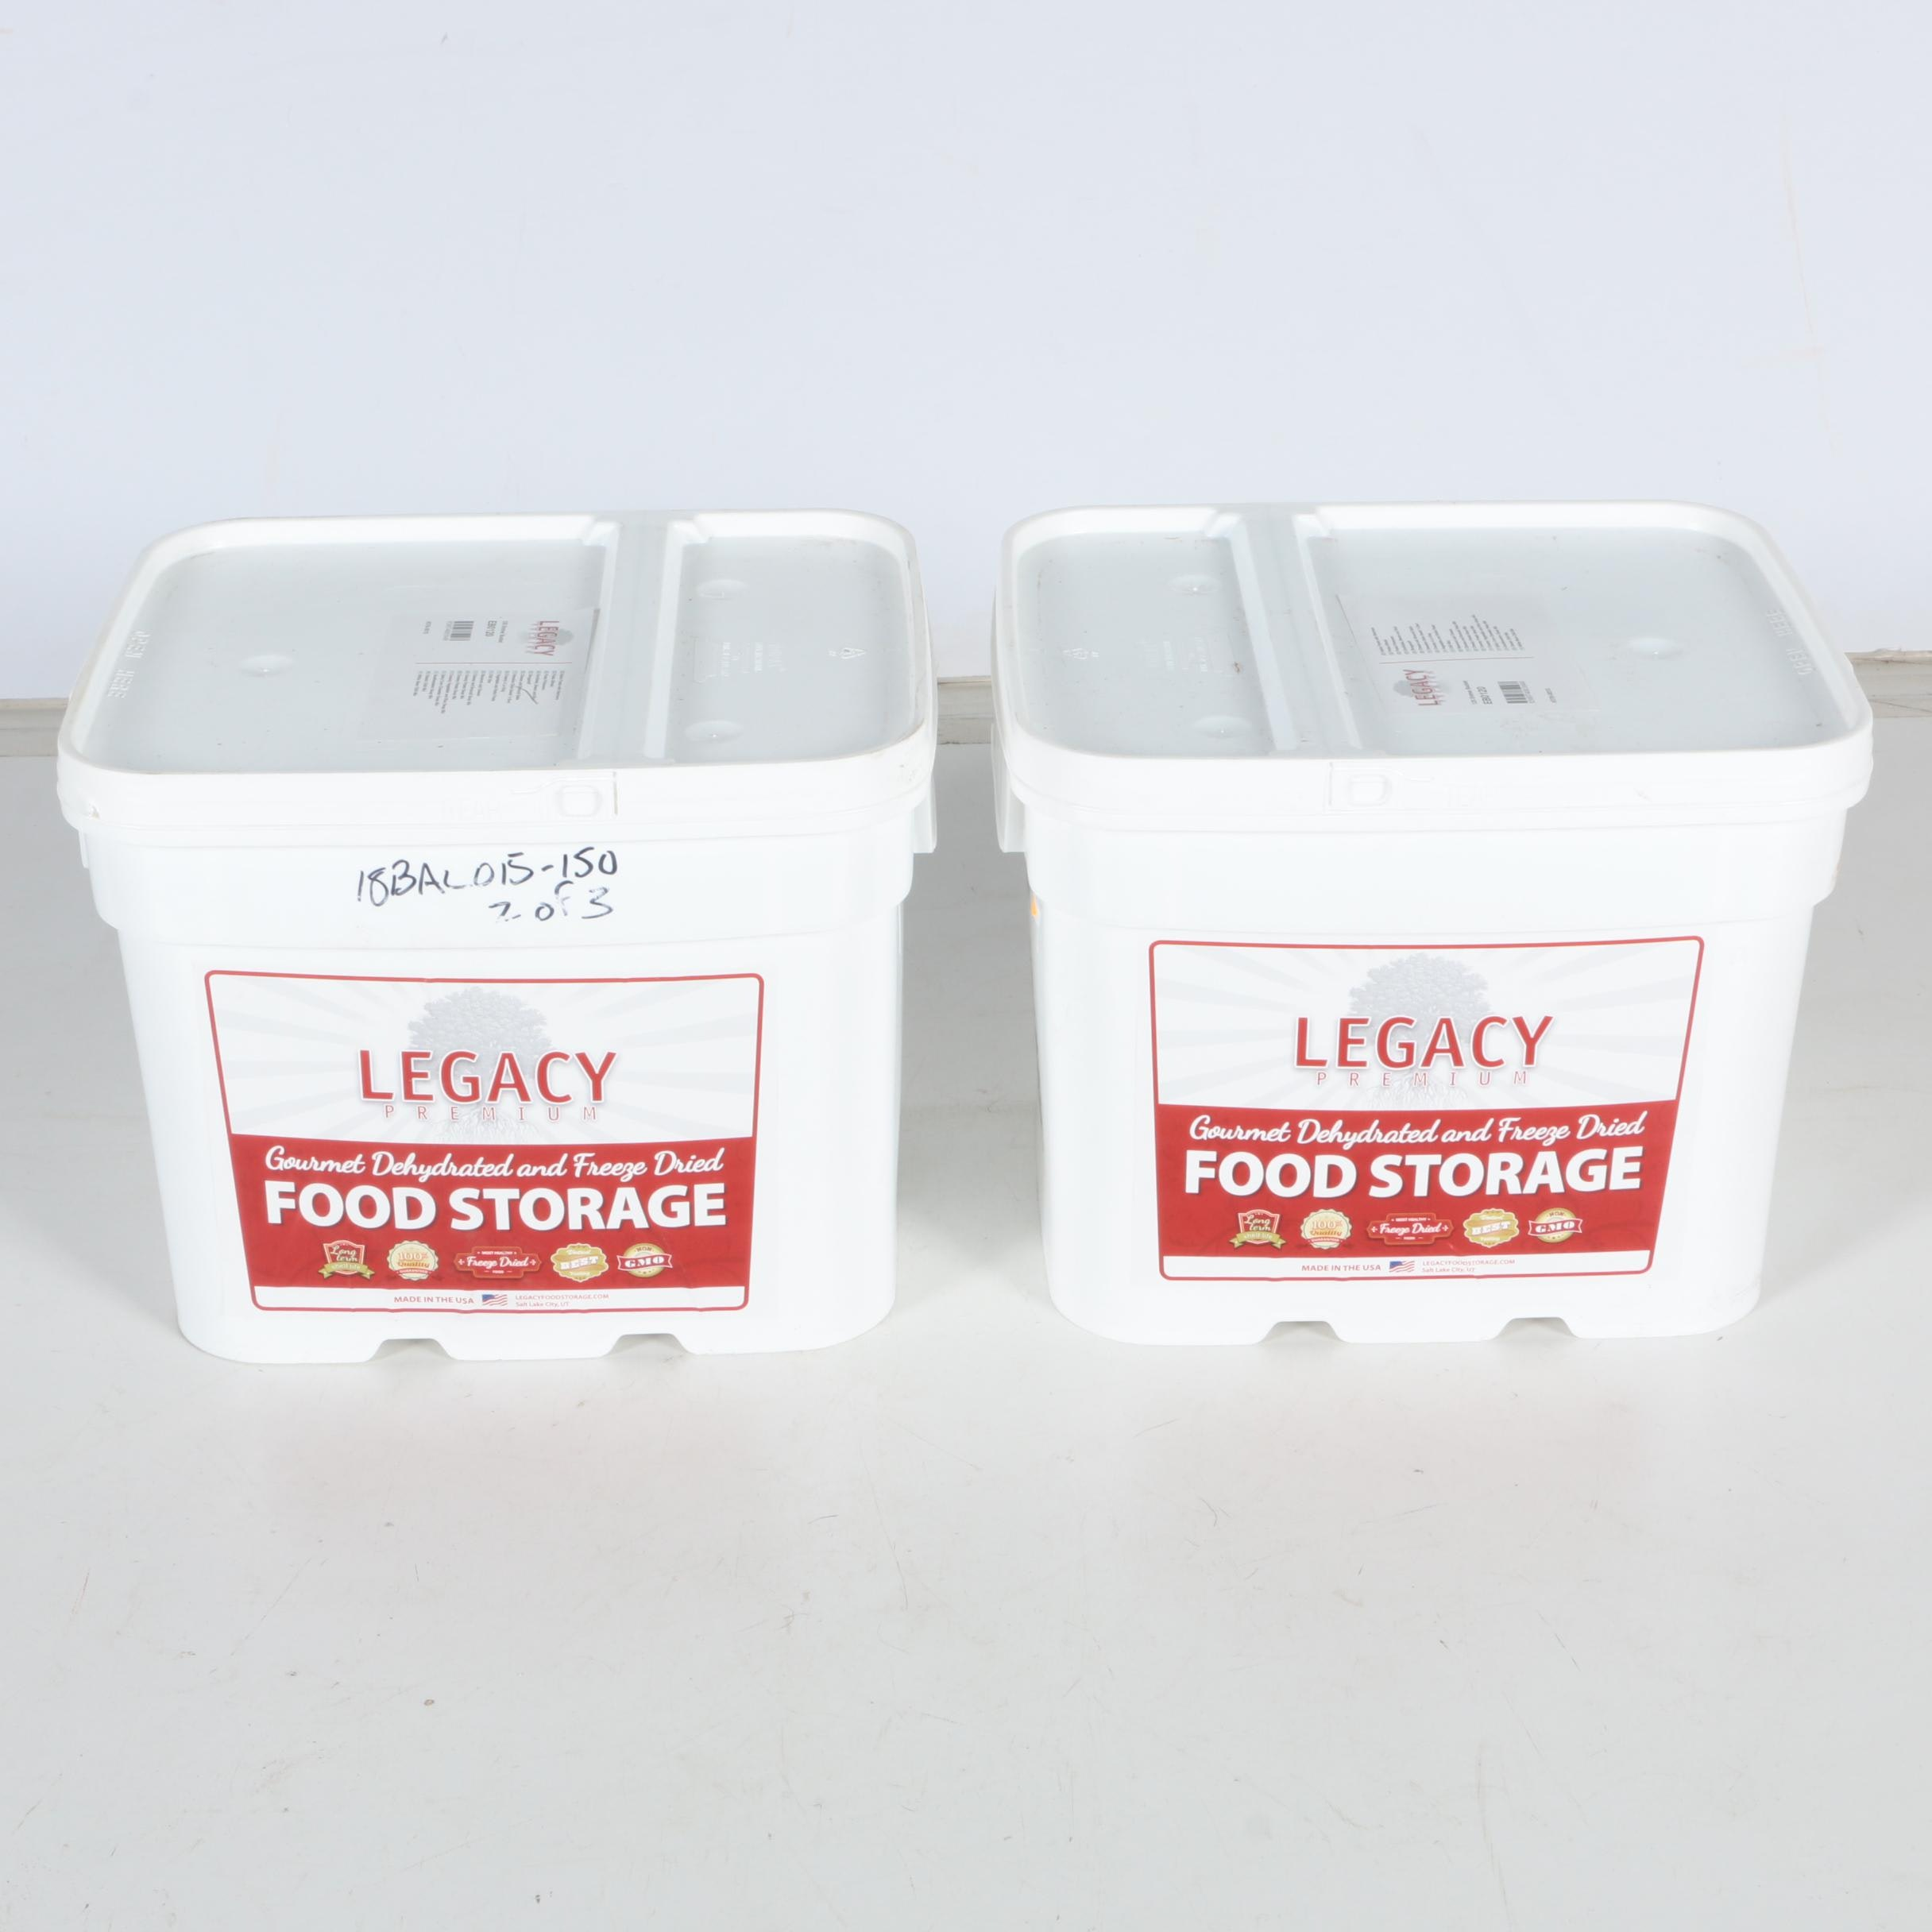 Legacy Premium Gourmet Dehyrdated and Freeze Dried Food Storage Containers ...  sc 1 st  EBTH.com & Legacy Premium Gourmet Dehyrdated and Freeze Dried Food Storage ...